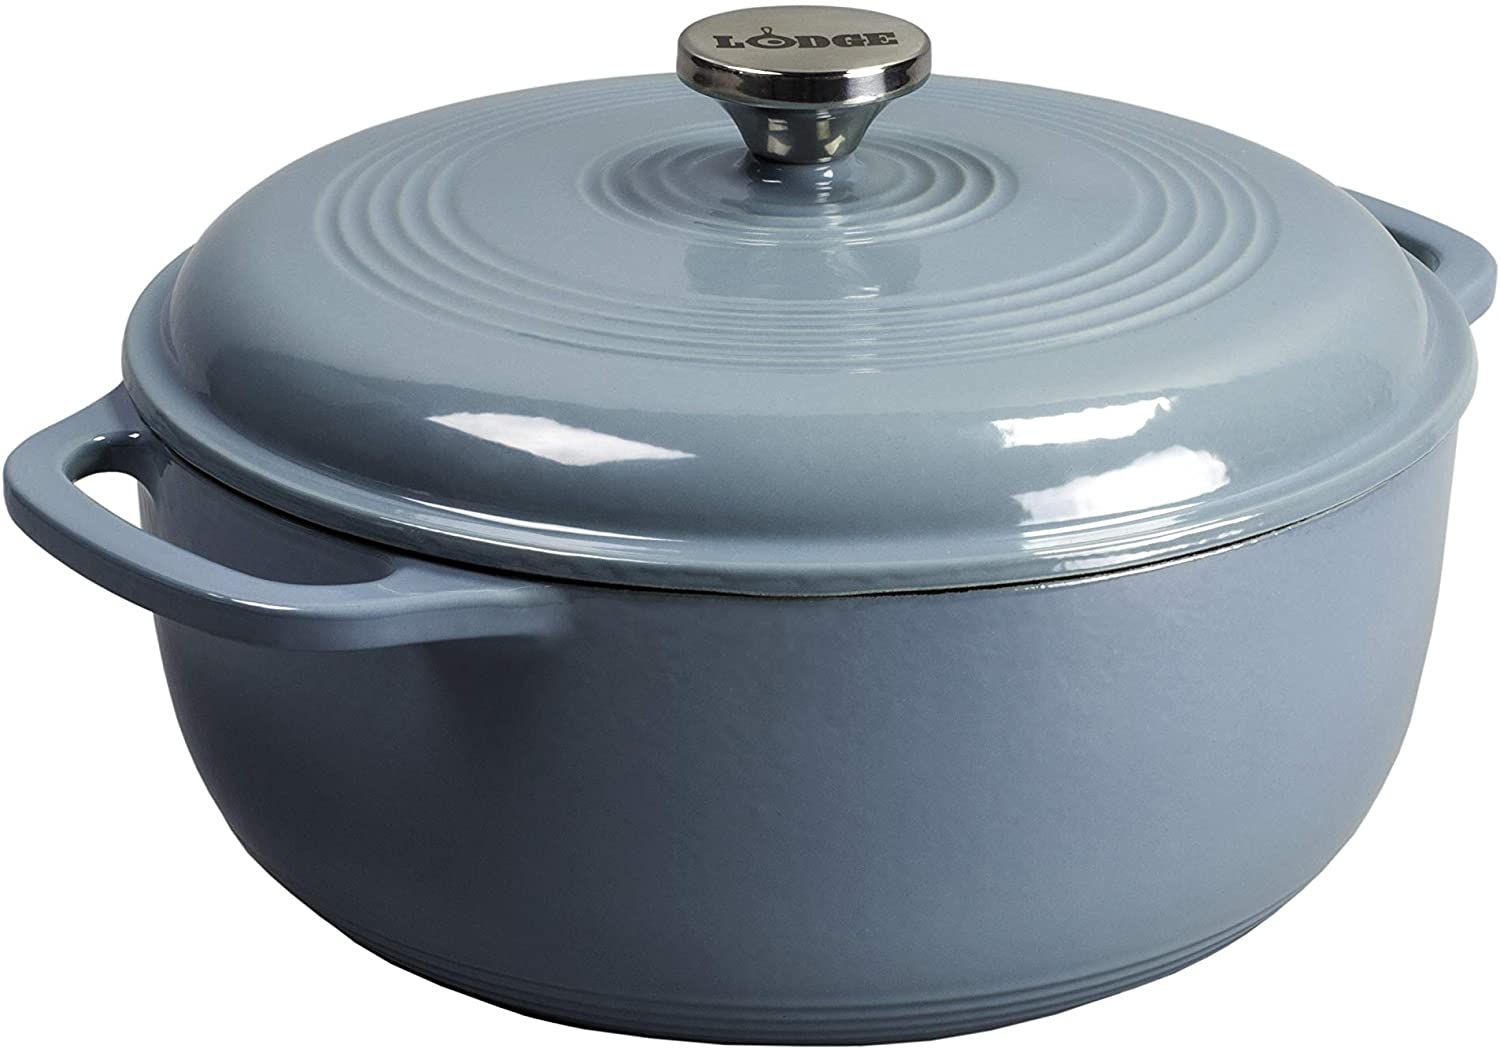 Lodge Enameled Dutch Oven in Stone Blue